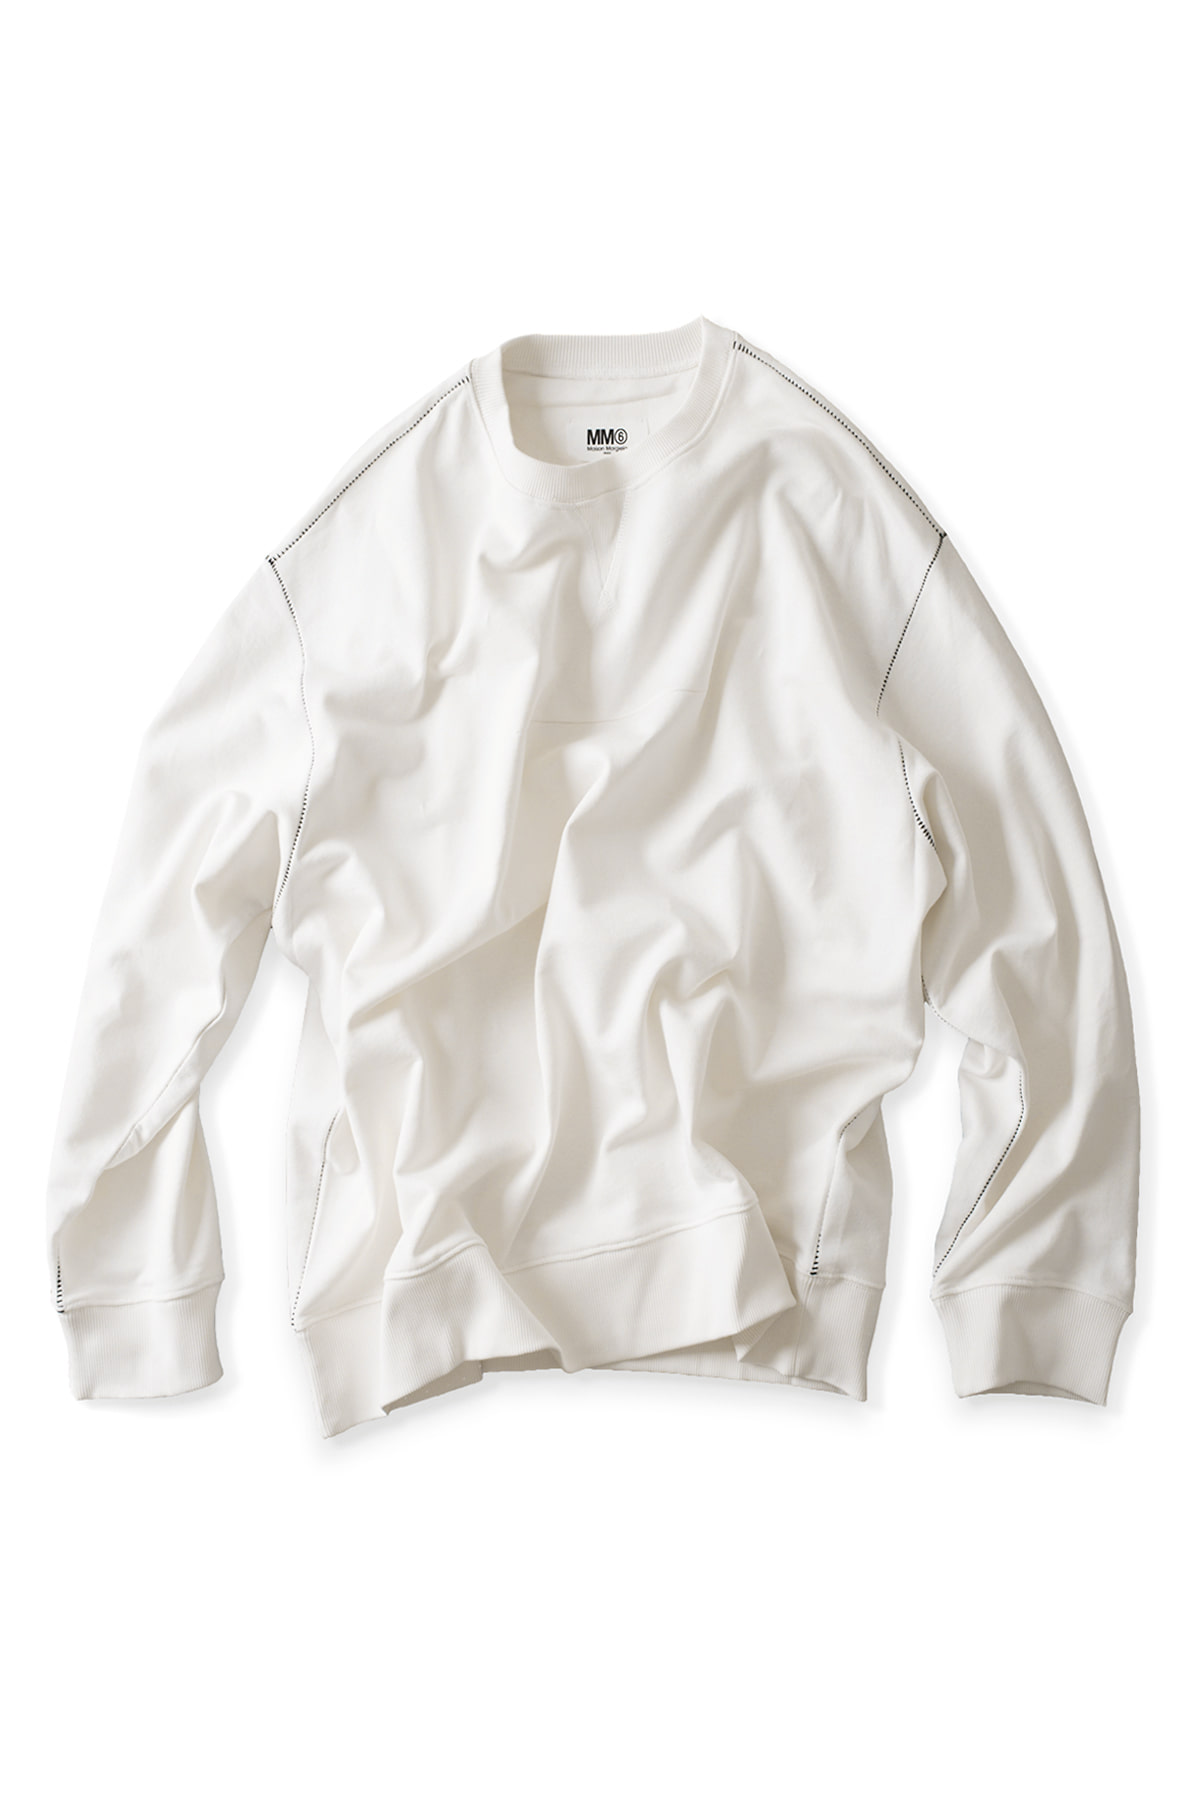 MM6 Maison Margiela : Basic Sweatshirt (White)